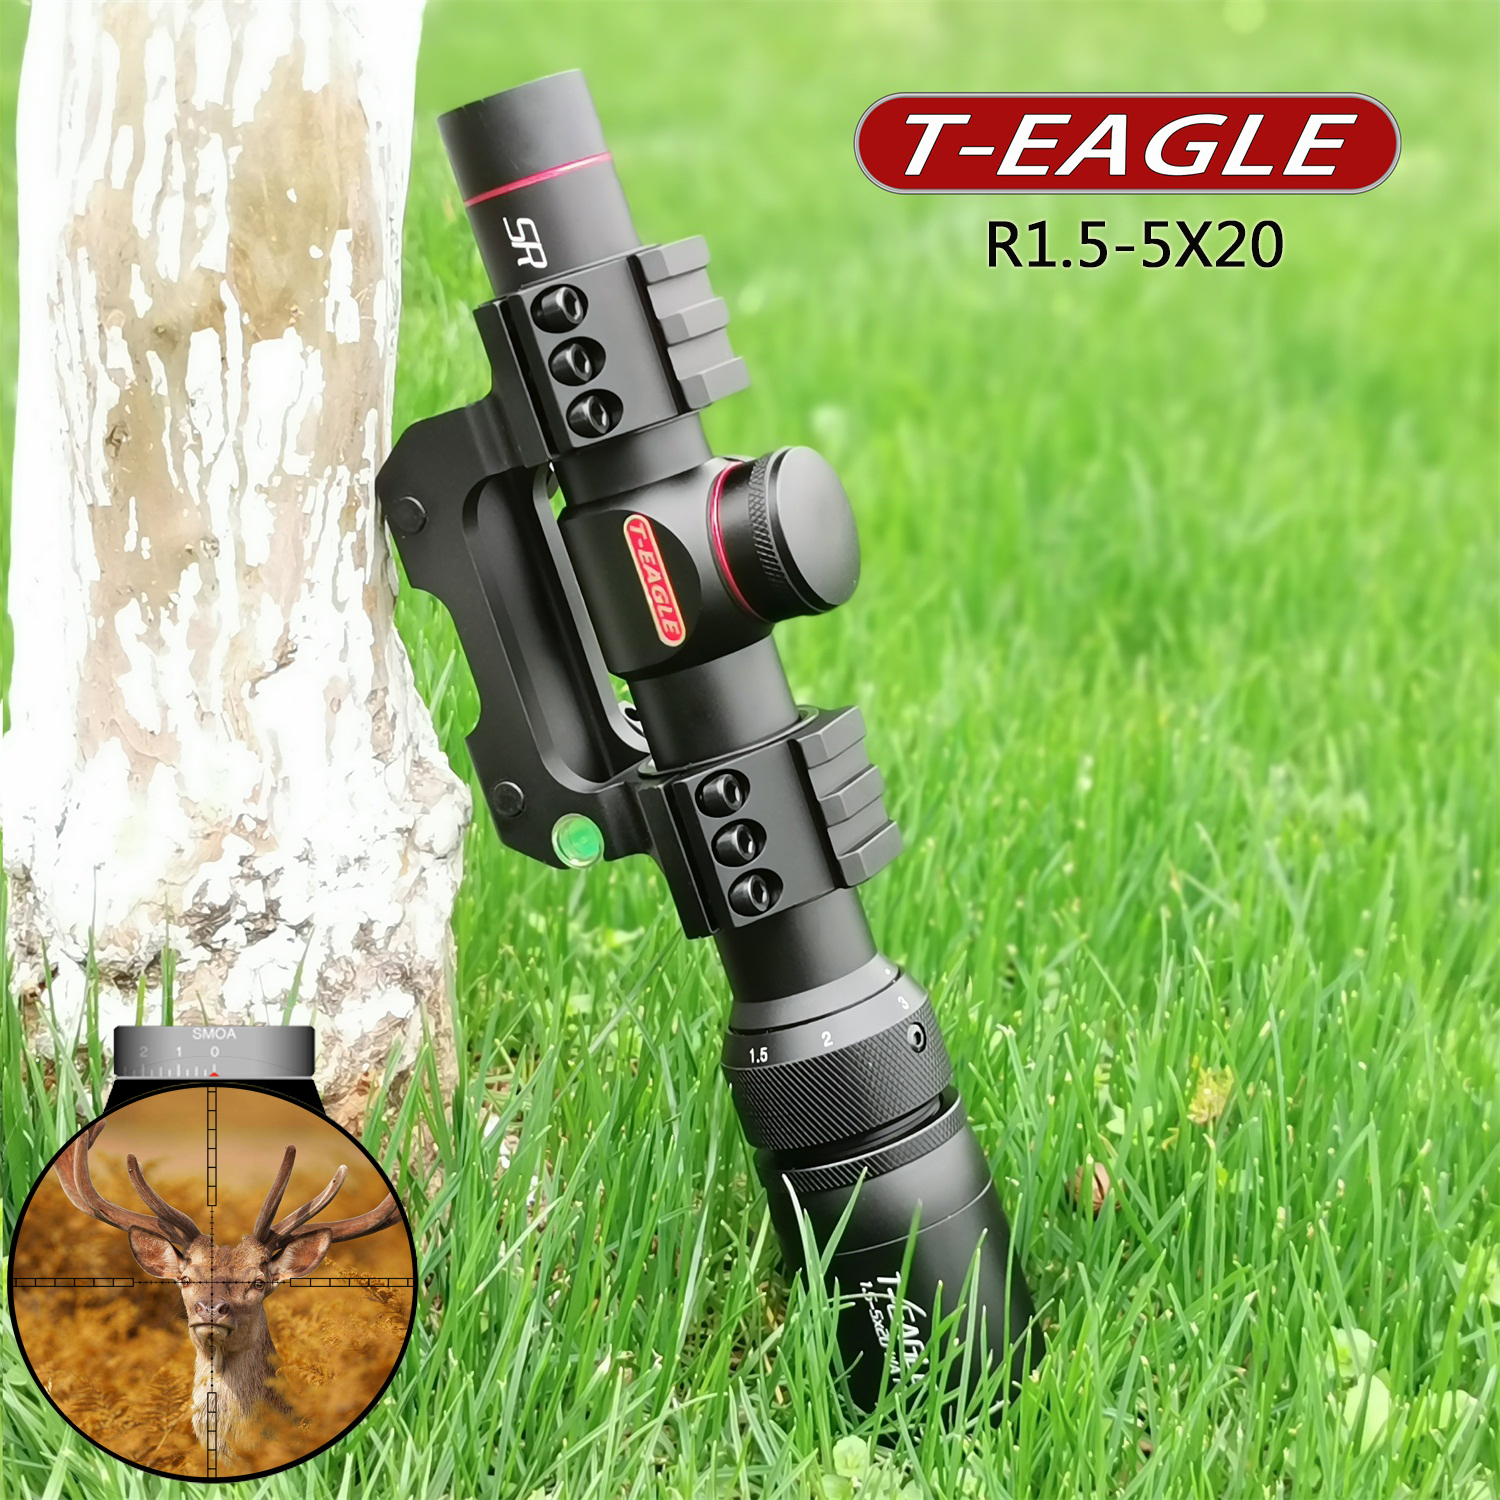 TEAGLE R1.5-5X20 Tactical RiflesScope Sniper Hunting Optics Riflescopes Airsoftsports Shock Proof Big Vision Rifle Scope